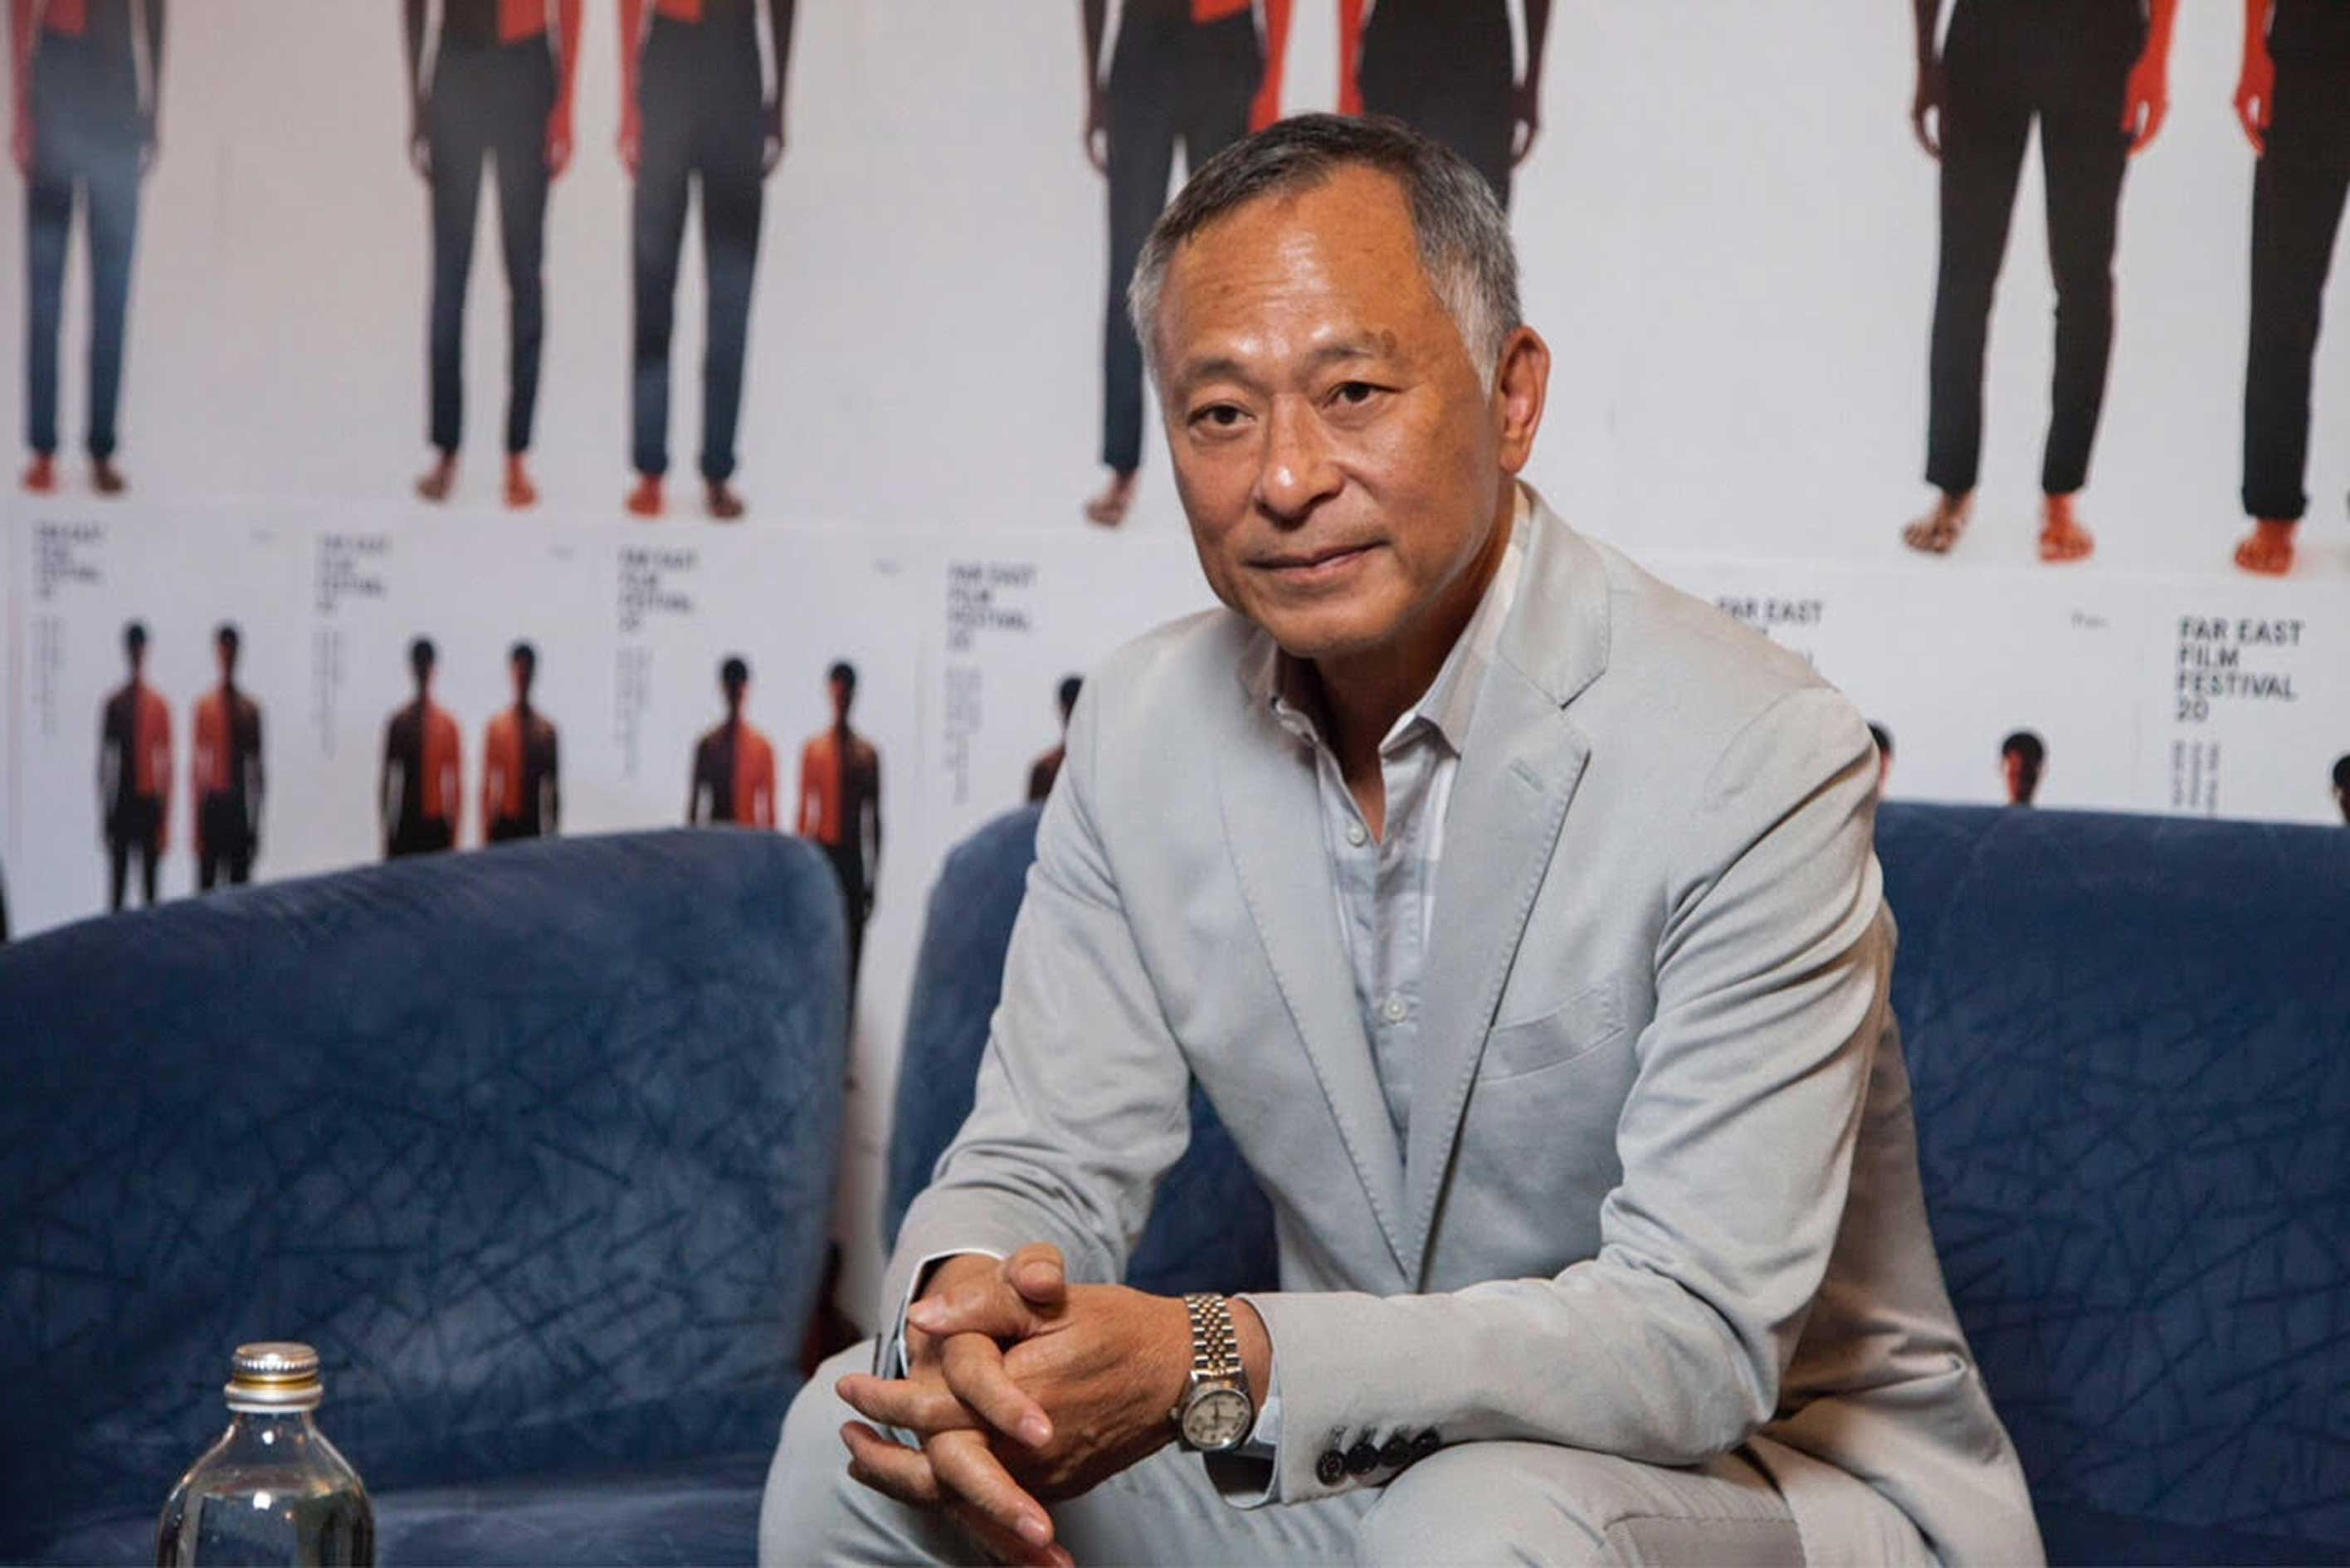 Hong Kong director Johnnie To Kei-fung